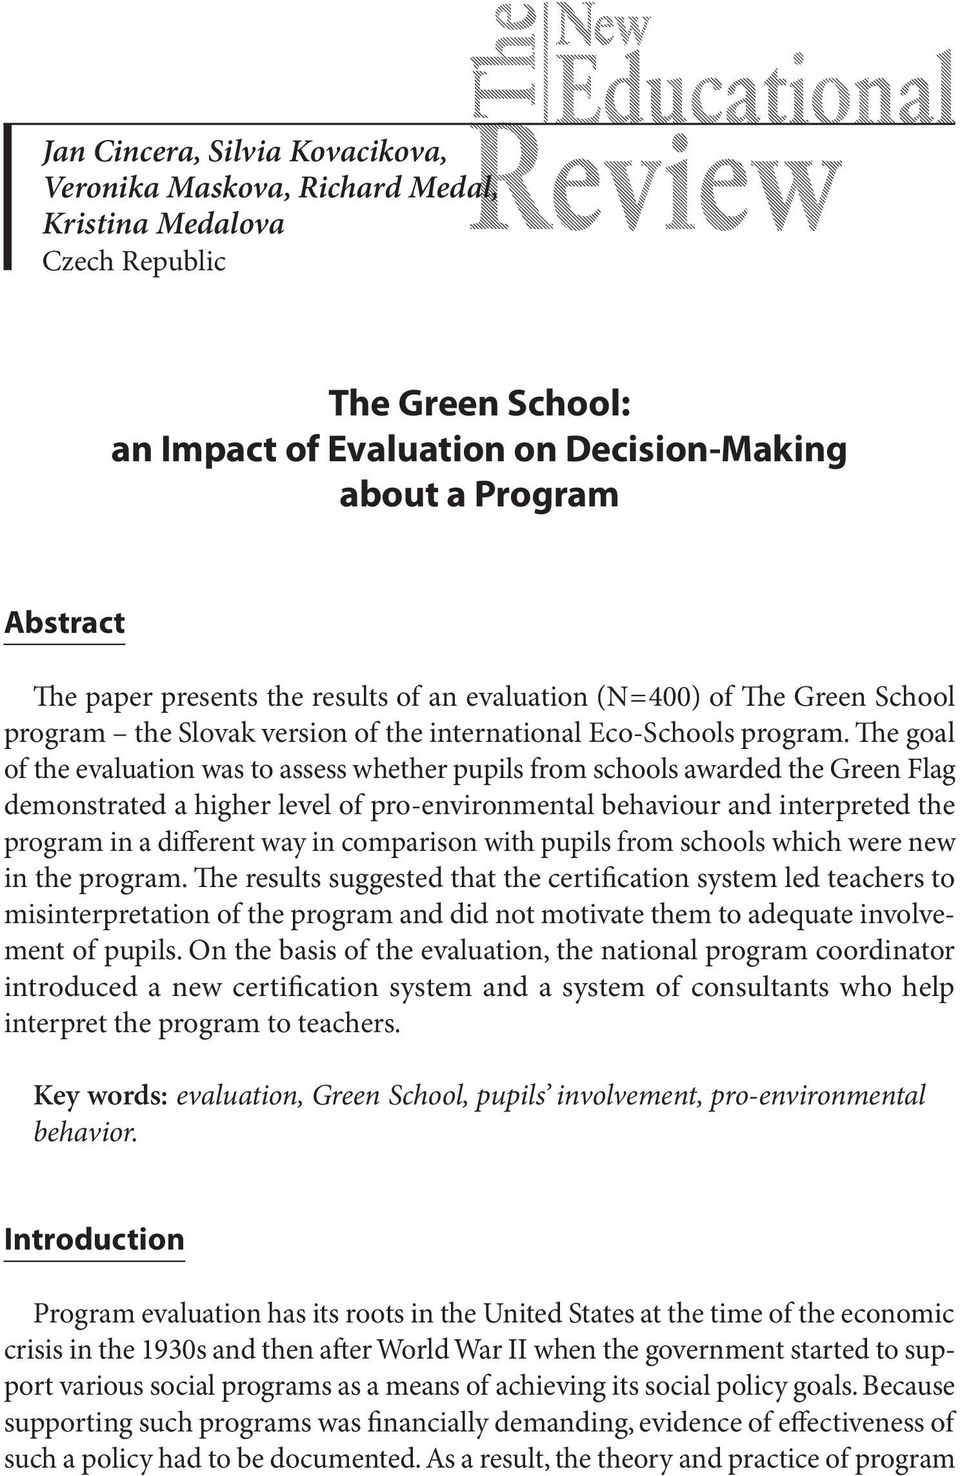 The goal of the evaluation was to assess whether pupils from schools awarded the Green Flag demonstrated a higher level of pro-environmental behaviour and interpreted the program in a different way